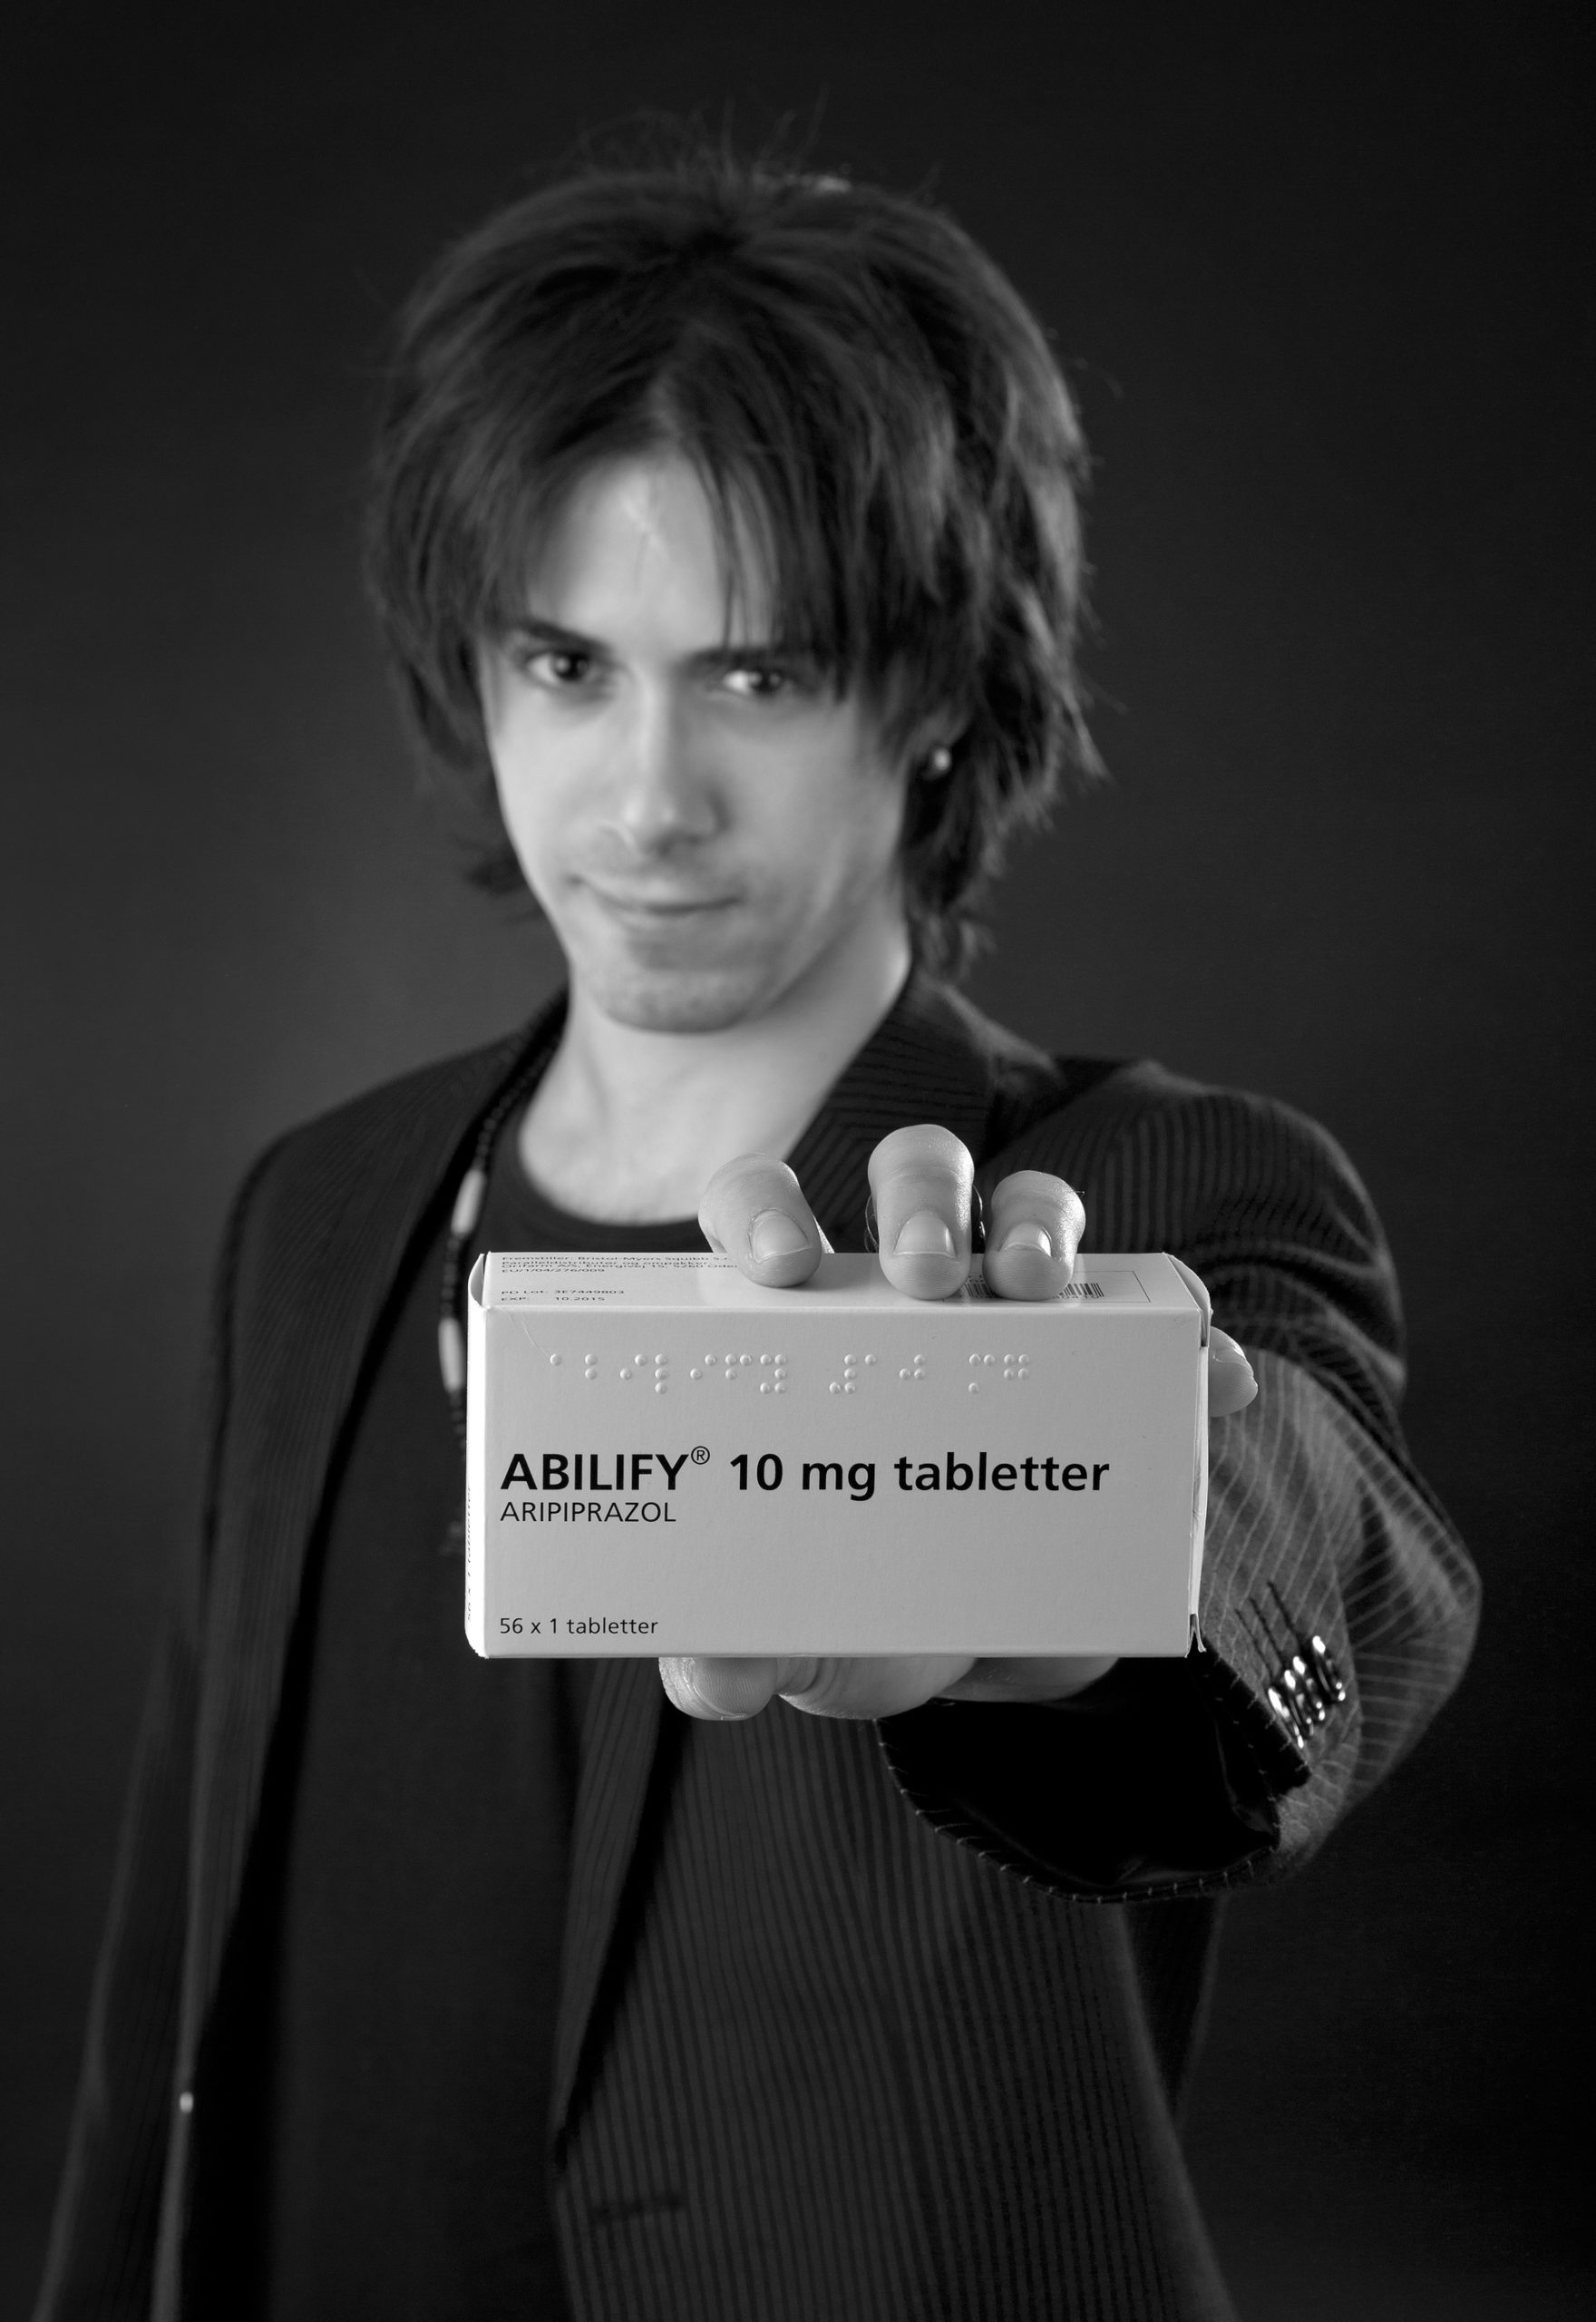 A young man showing abilify medicinal tablets